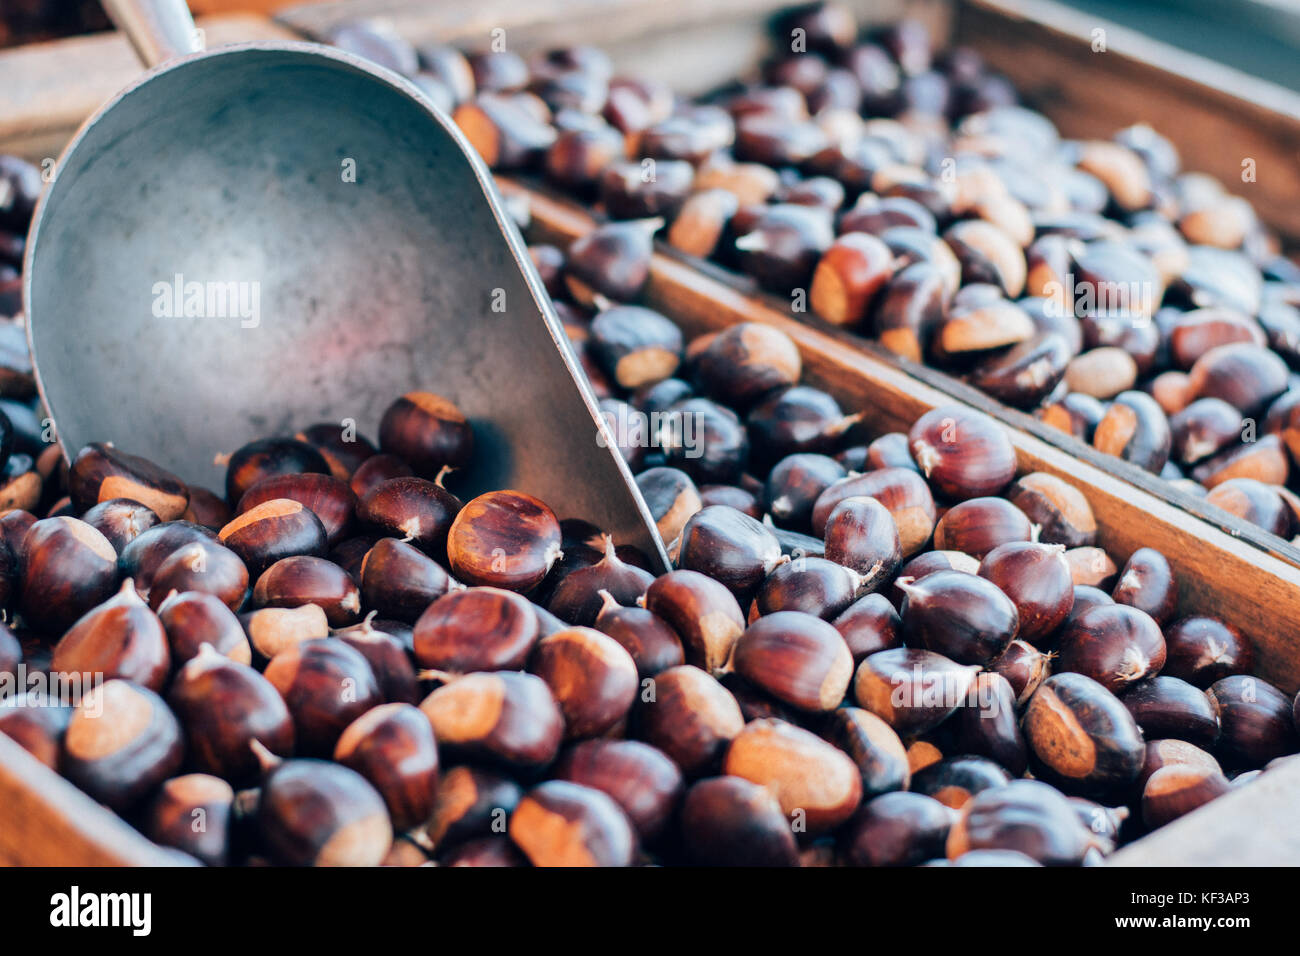 Organic local Farmer's Market Chestnuts ready for roasting in a wooden box with a scoop or on an open flame - Stock Image